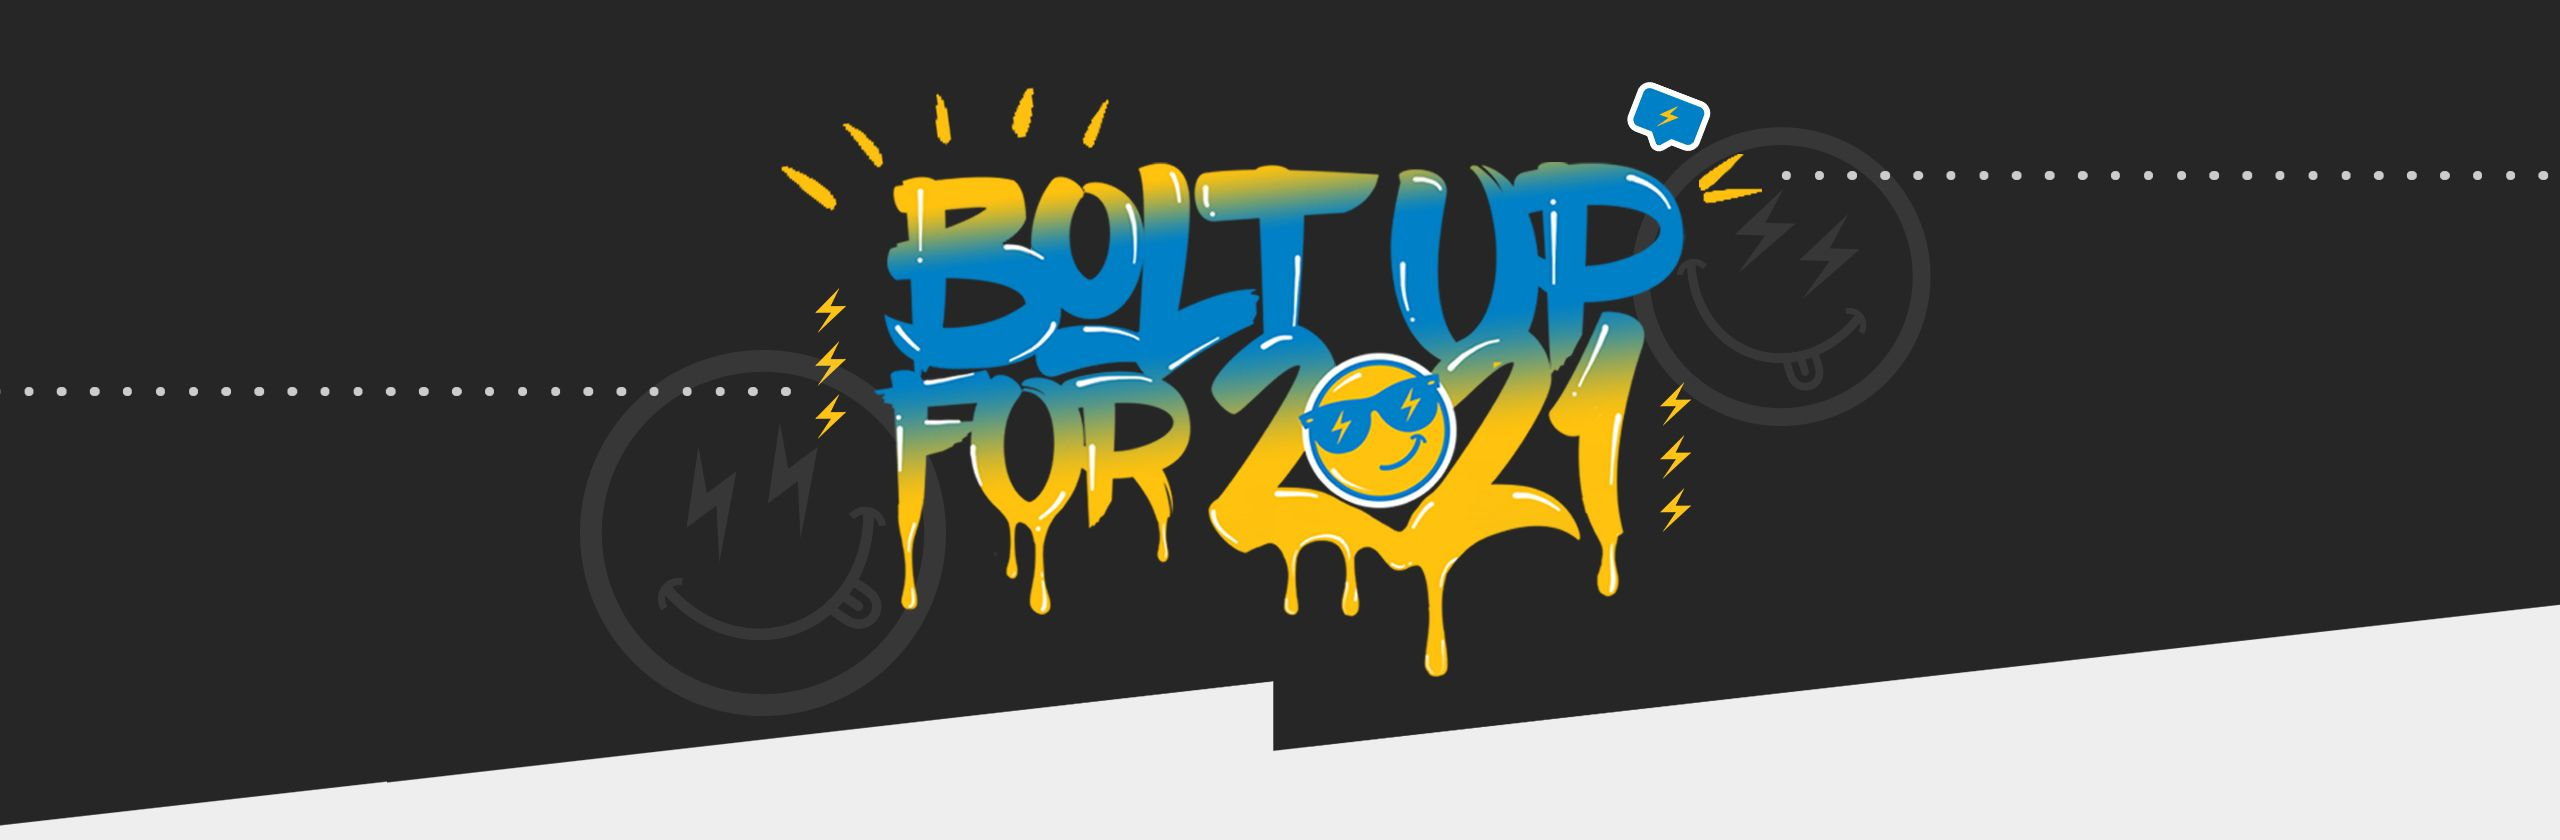 210111_Site_Tickets_Bolt_Up_2021_Hero